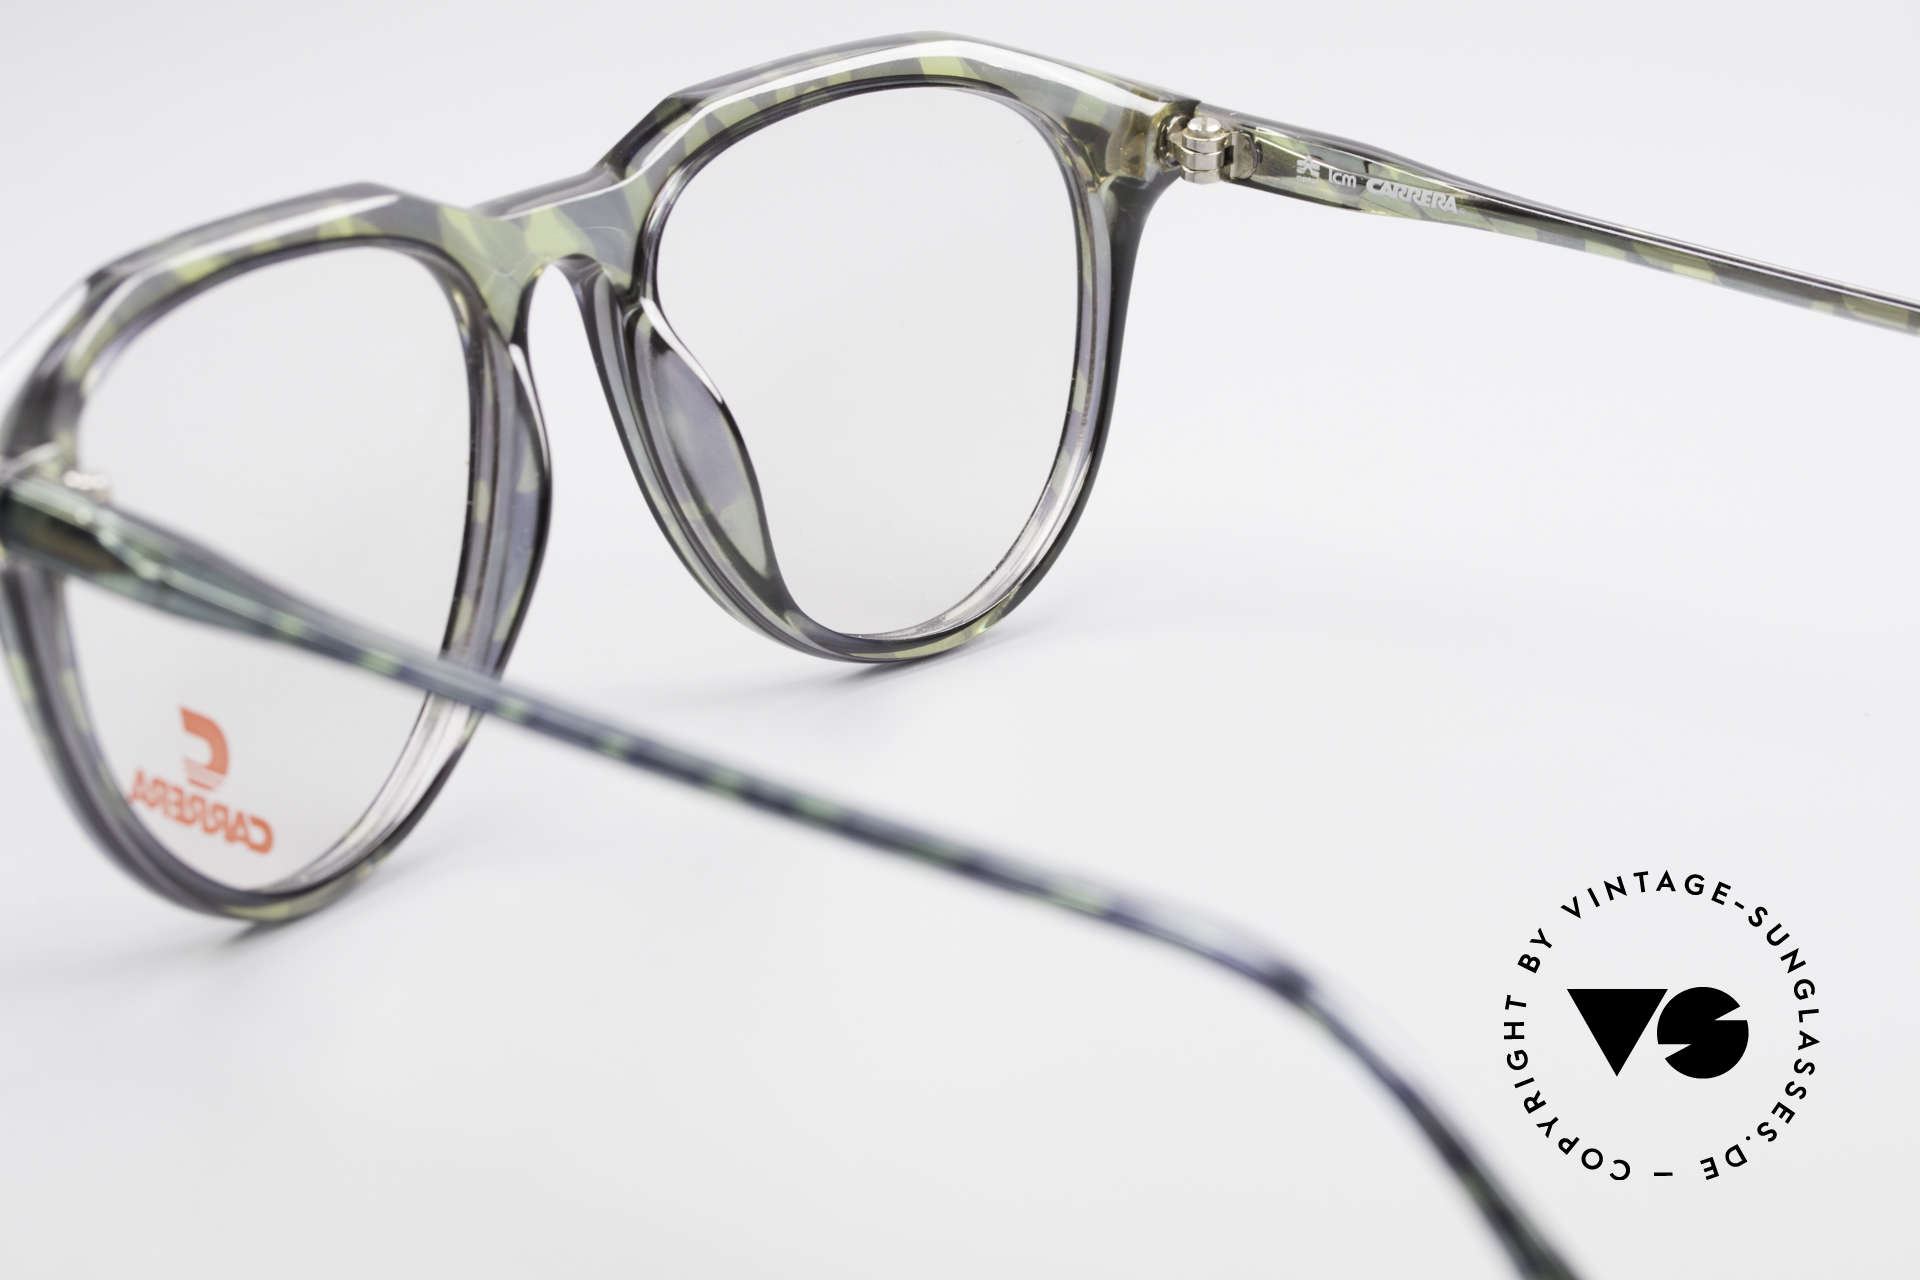 Carrera 5361 90's Optyl Panto Eyeglasses, the frame can be glazed with optical / sun lenses, Made for Men